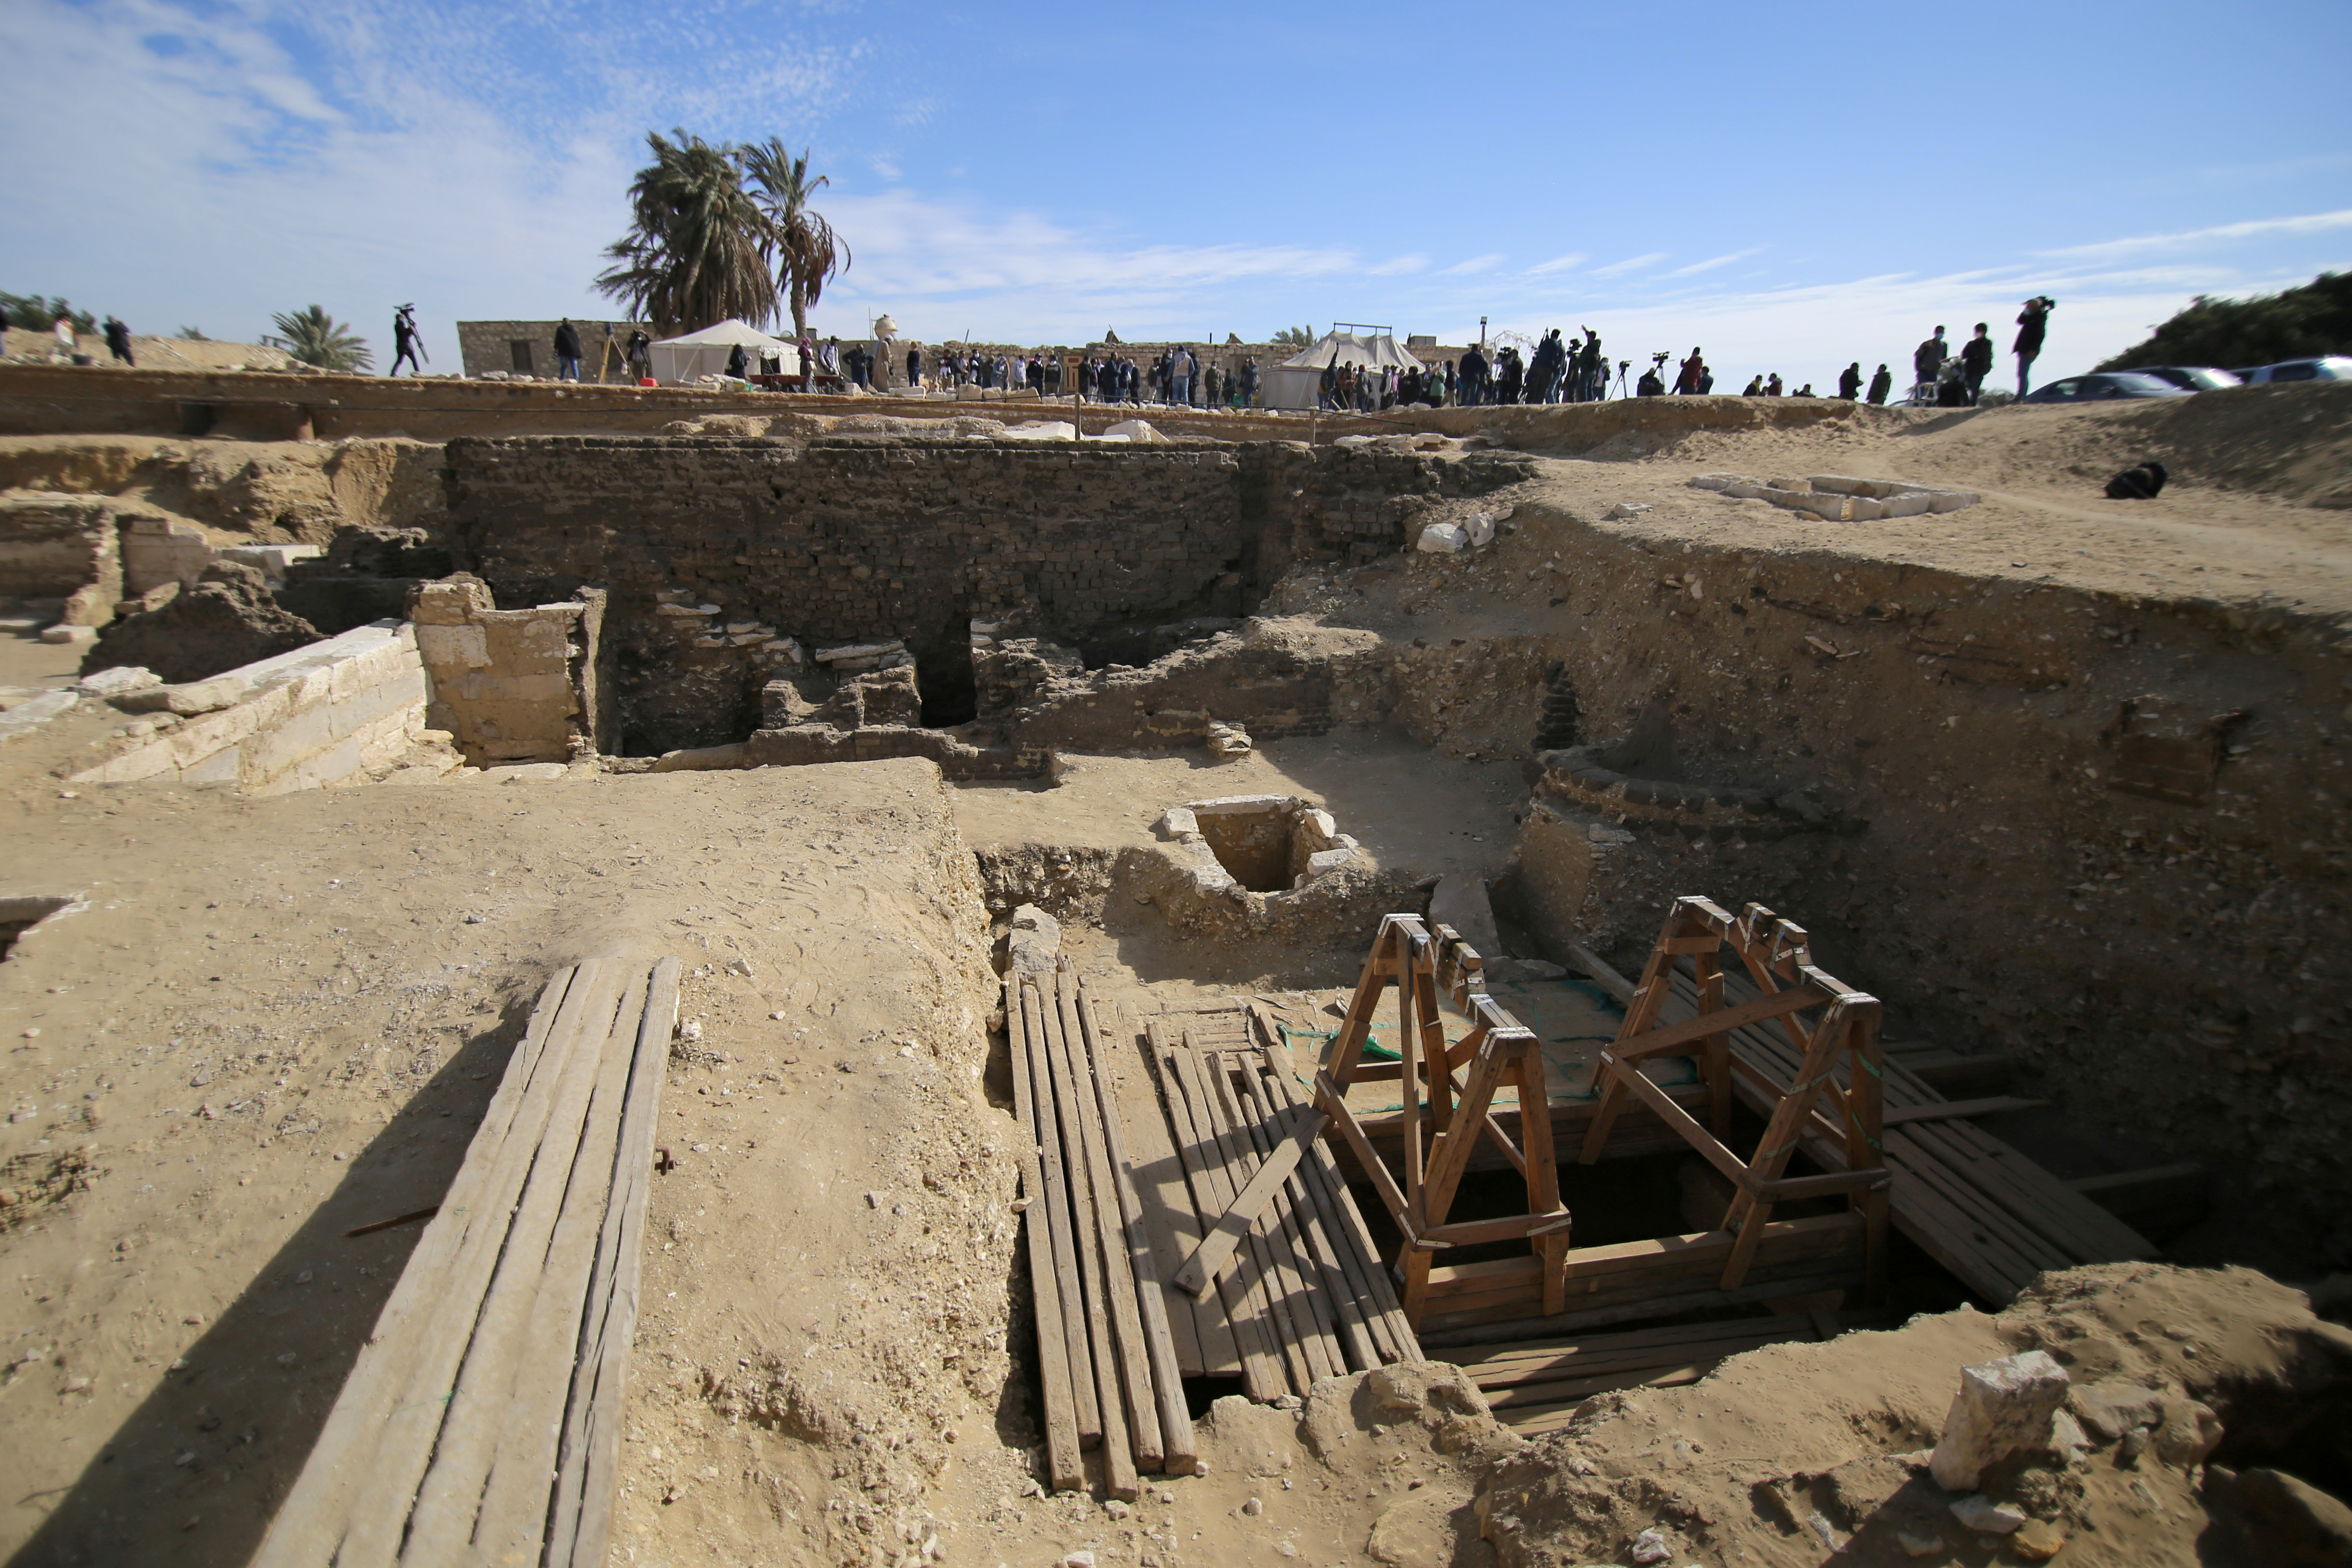 A view shows the site of a new discovery at the Saqqara necropolis south of Cairo, Egypt January 17, 2021. REUTERS/Hanaa Habib/File Photo